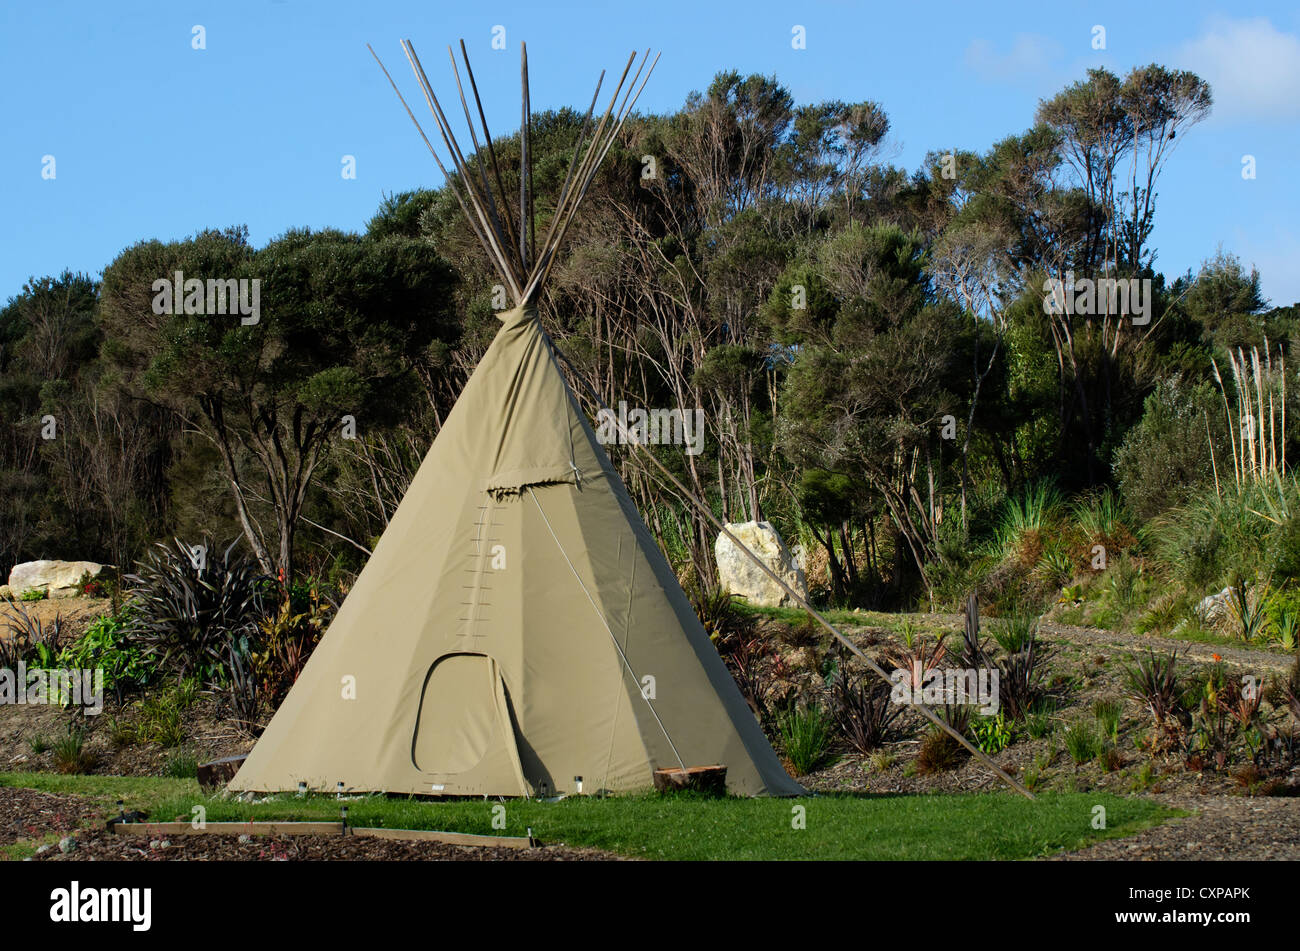 A Tipi (teepee or tepee) a traditional housing for Native Americans Indians in Great Plains and other Western states. - Stock Image